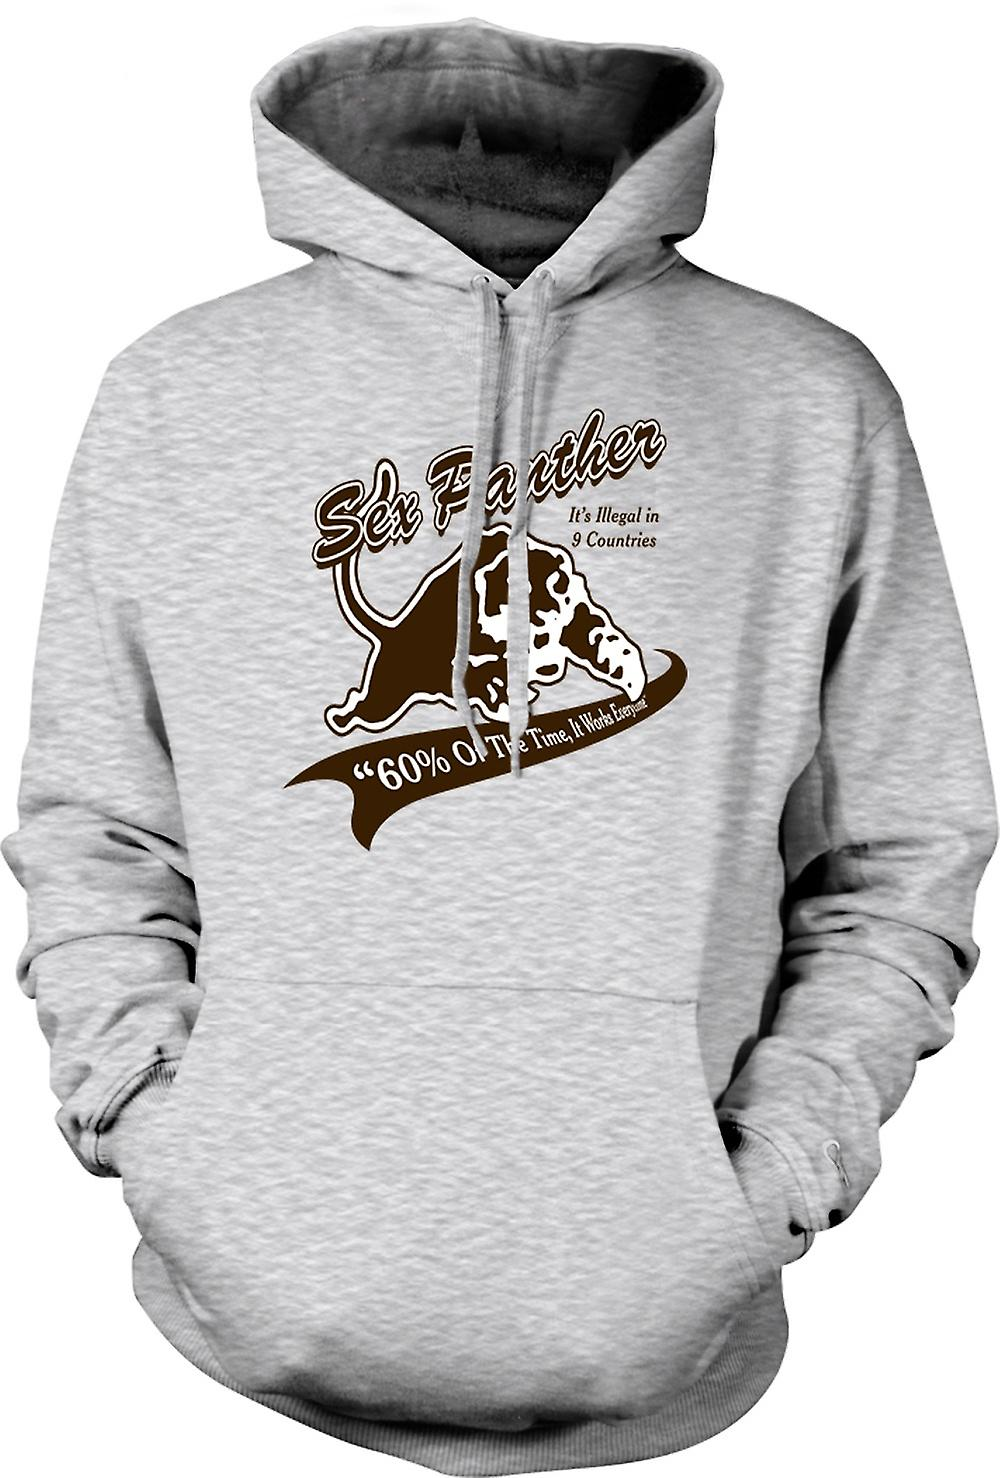 Mens Hoodie - Anchor Man - Sex Panther - Funny